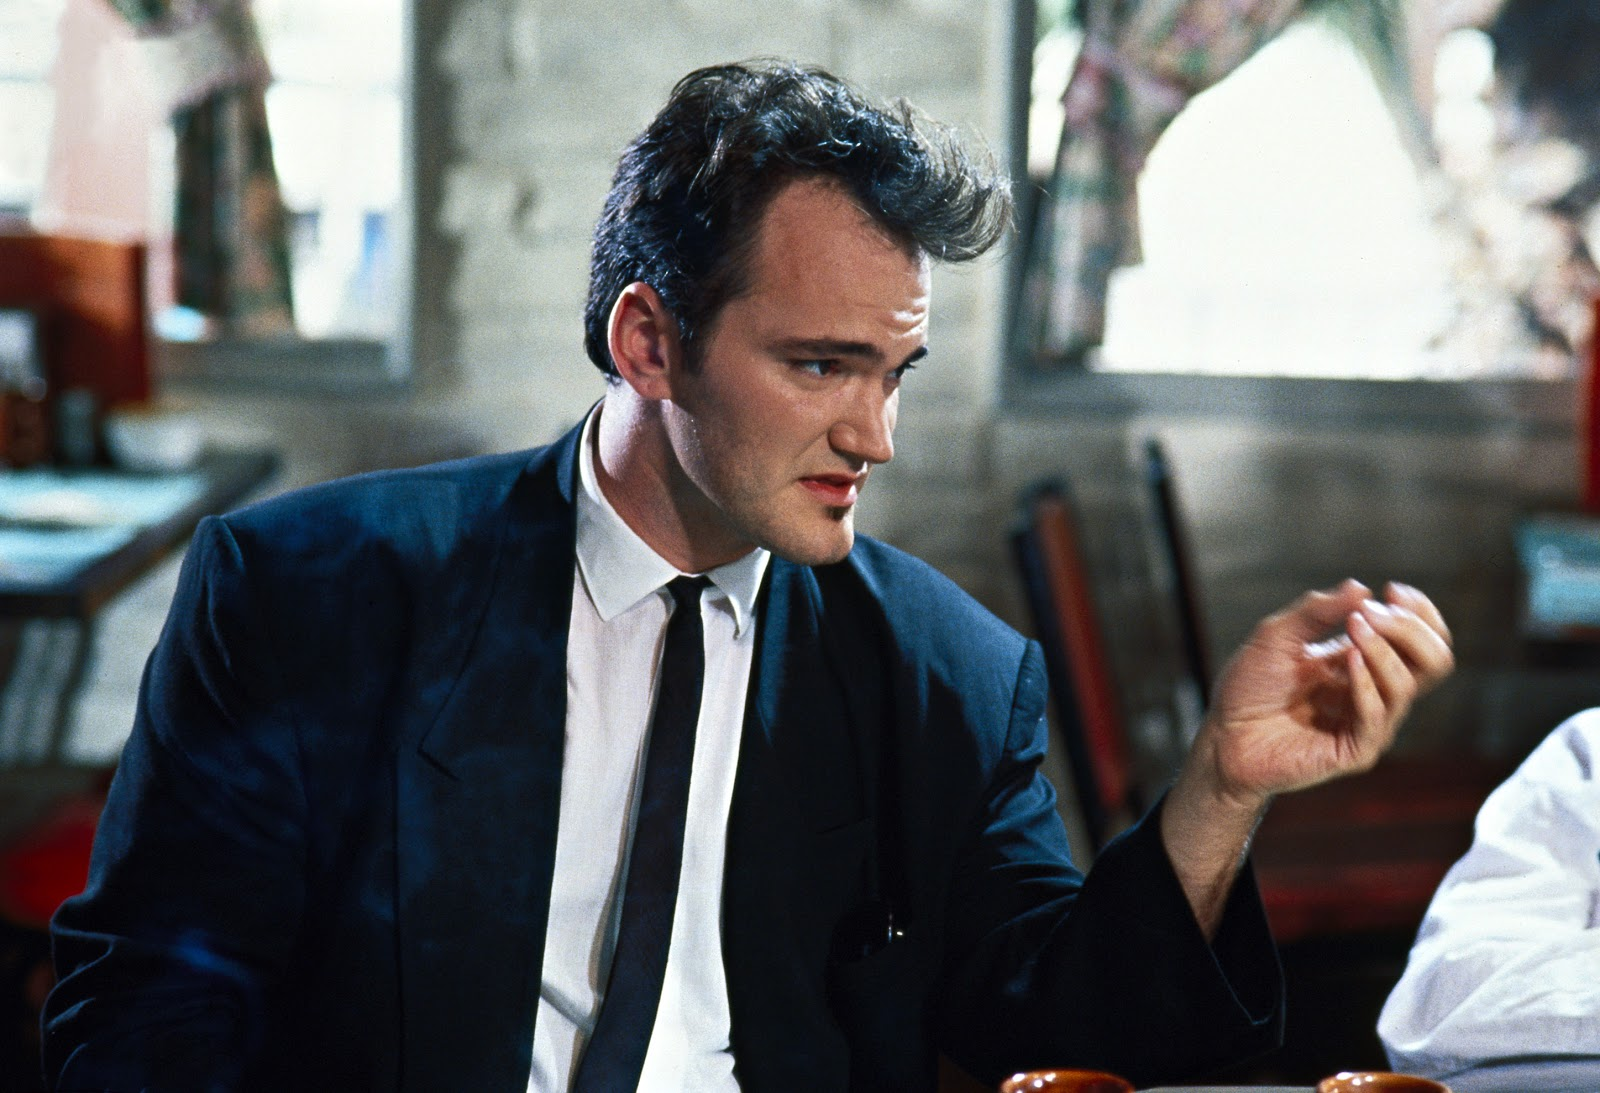 quentin tarantino Ranking: Every Quentin Tarantino Movie from Worst to Best